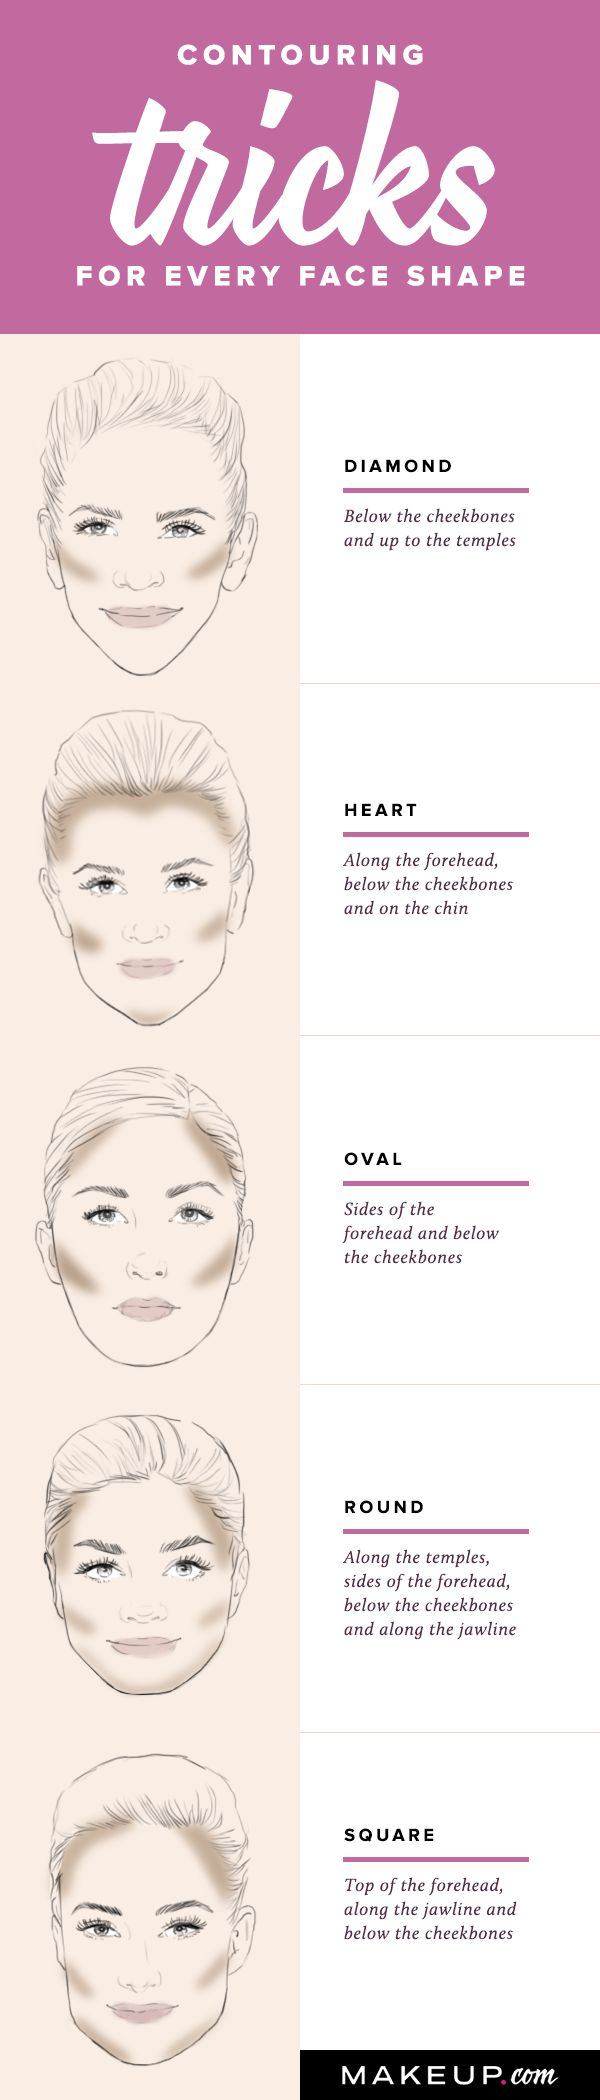 We love contouring, but you're likely to get the best Instagram-worthy result if you contour according to your face shape. Follow our simple guide to find out just where you should contour  based on your unique facial features.